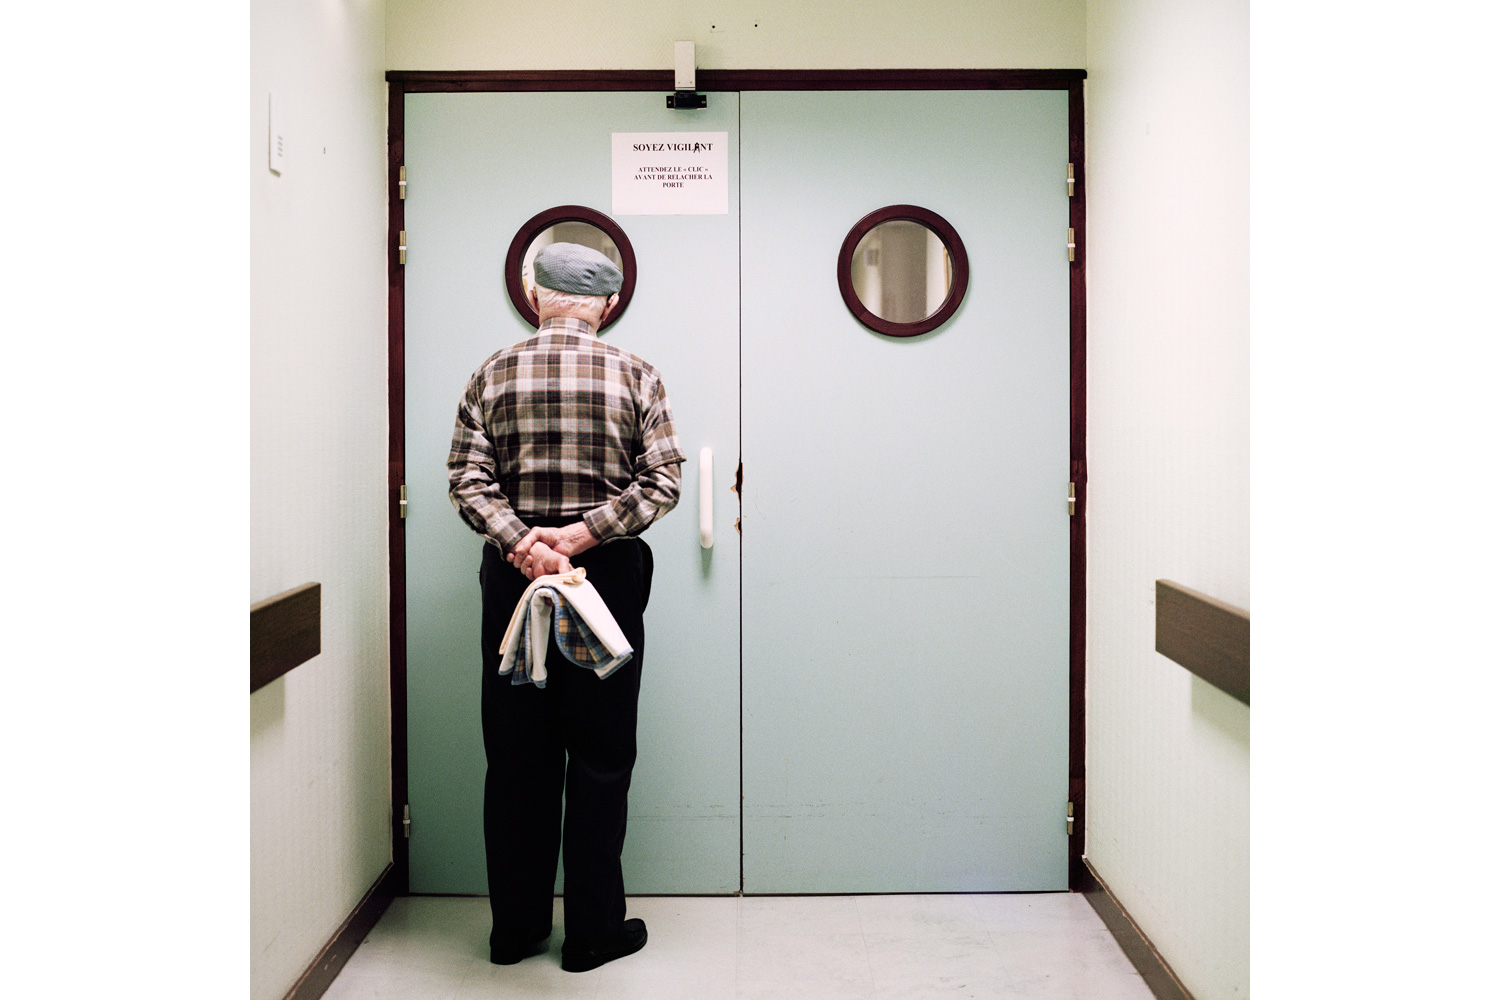 A resident stands in front of the ward's locked exit door. Passages are blocked and doors are locked to prevent residents from wandering off. Photographer Maja Daniels spent three years, beginning in 2008, documenting the ward and its residents